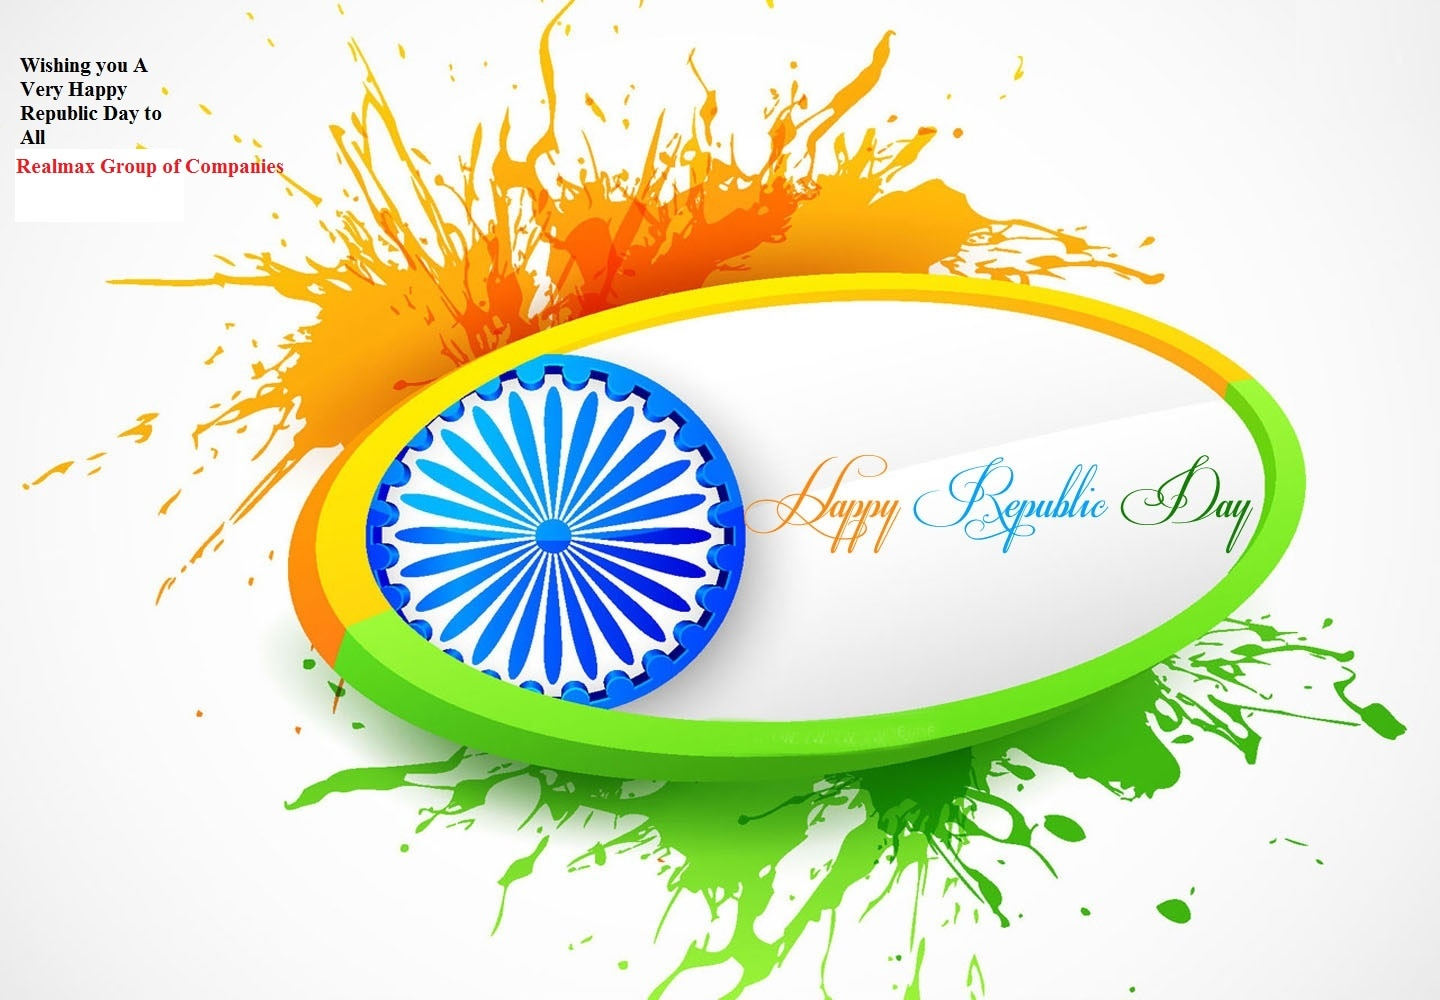 Wishing you Happy Republic Day to All - Buy House/Villas/Plot